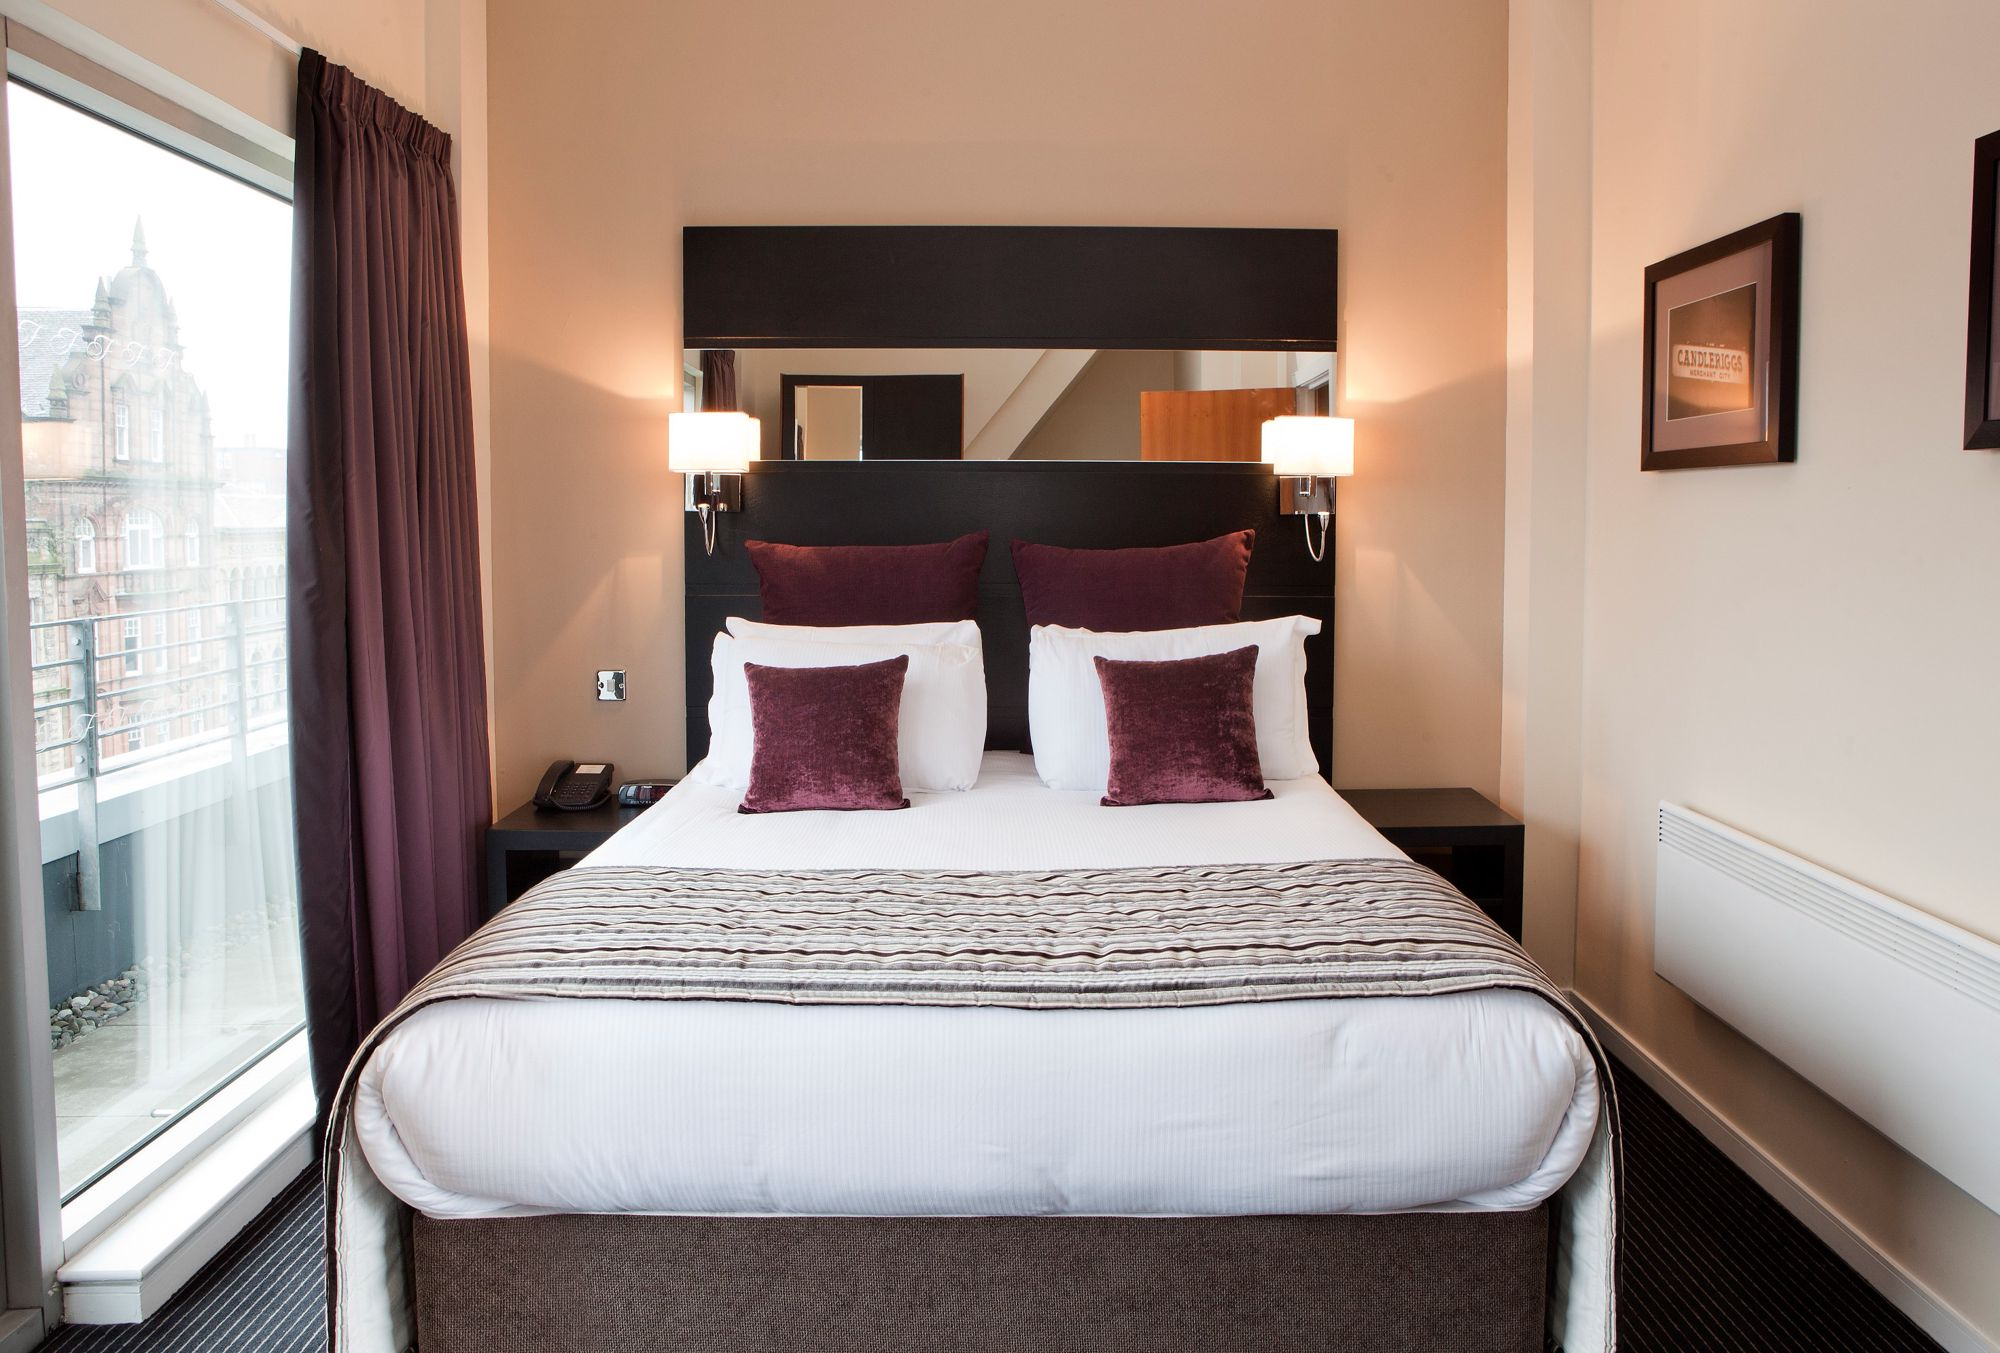 Self-Catering in Glasgow holidays at Cool Places